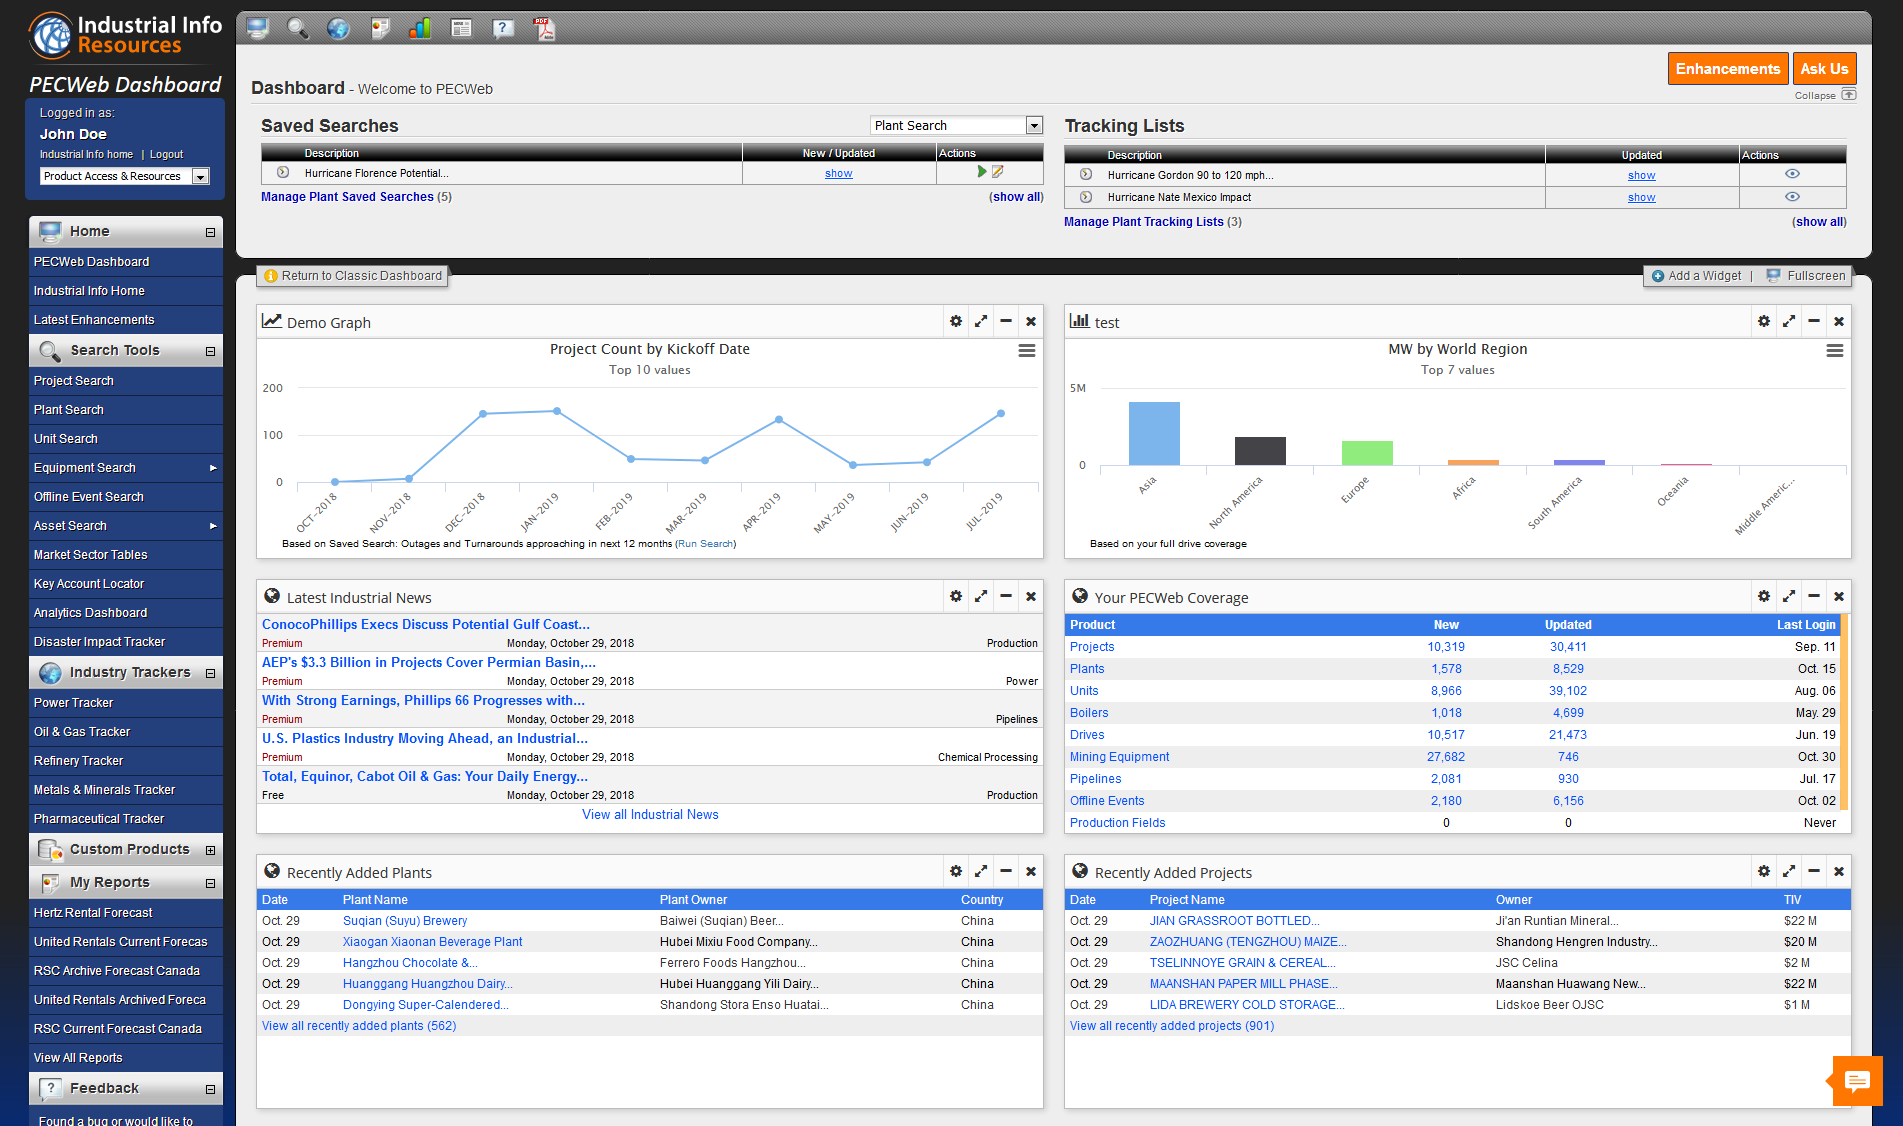 PECWeb Dashboard